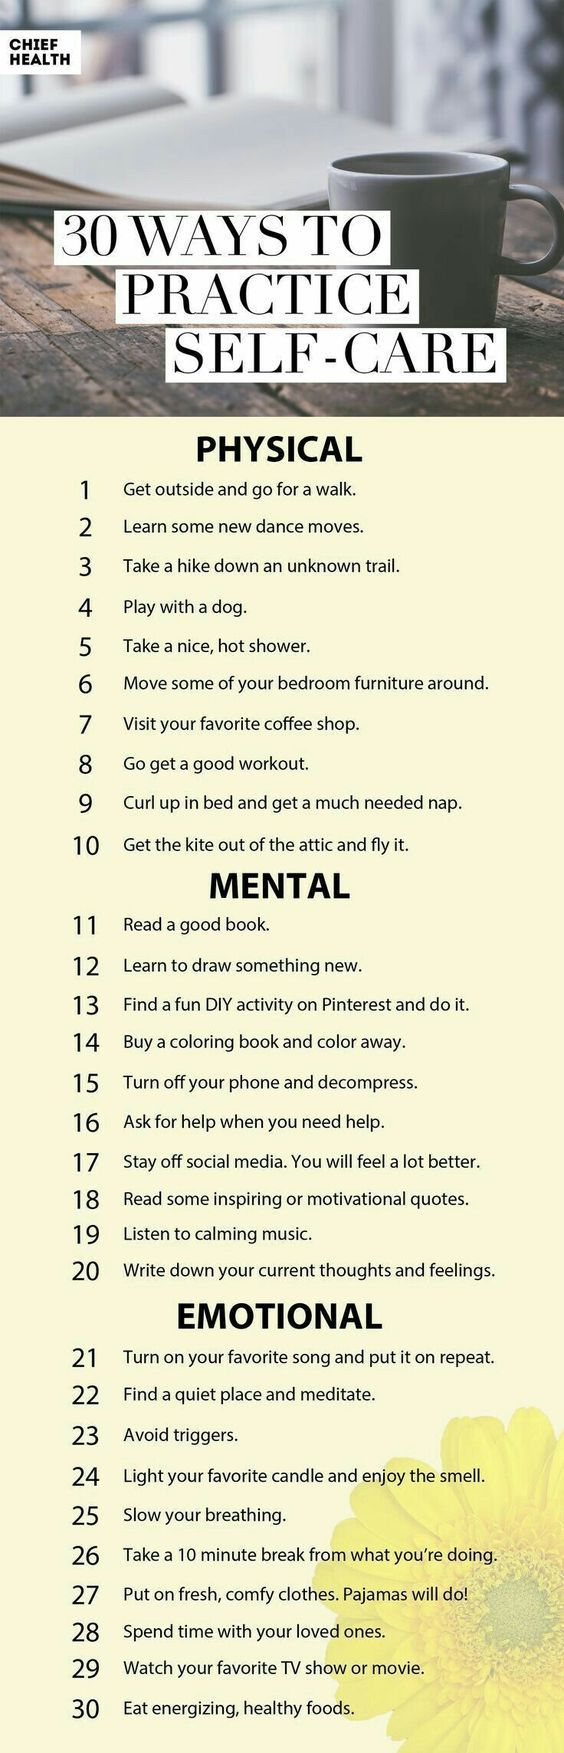 30 ways to practice self-care. #selfcare #selflove #happiness